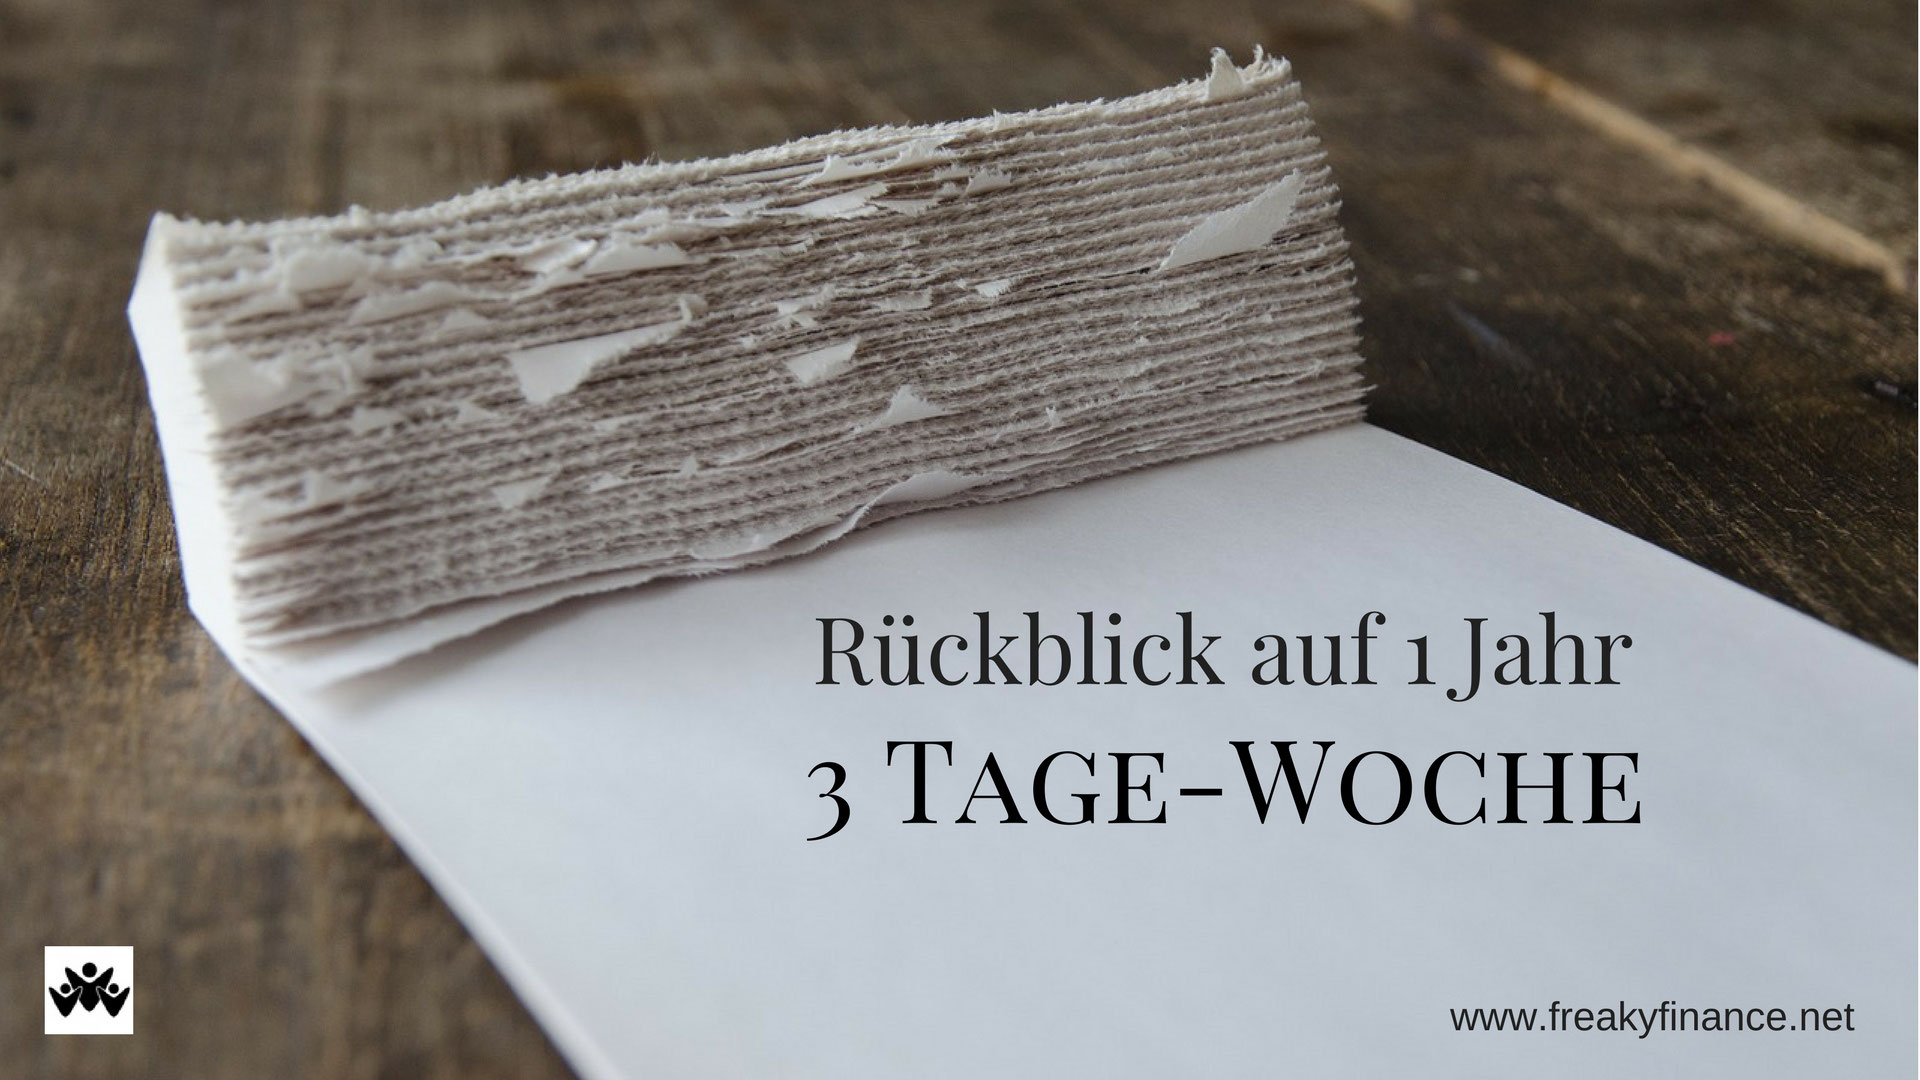 3 tage woche freaky finance selbstst ndiger for Koch 5 tage woche